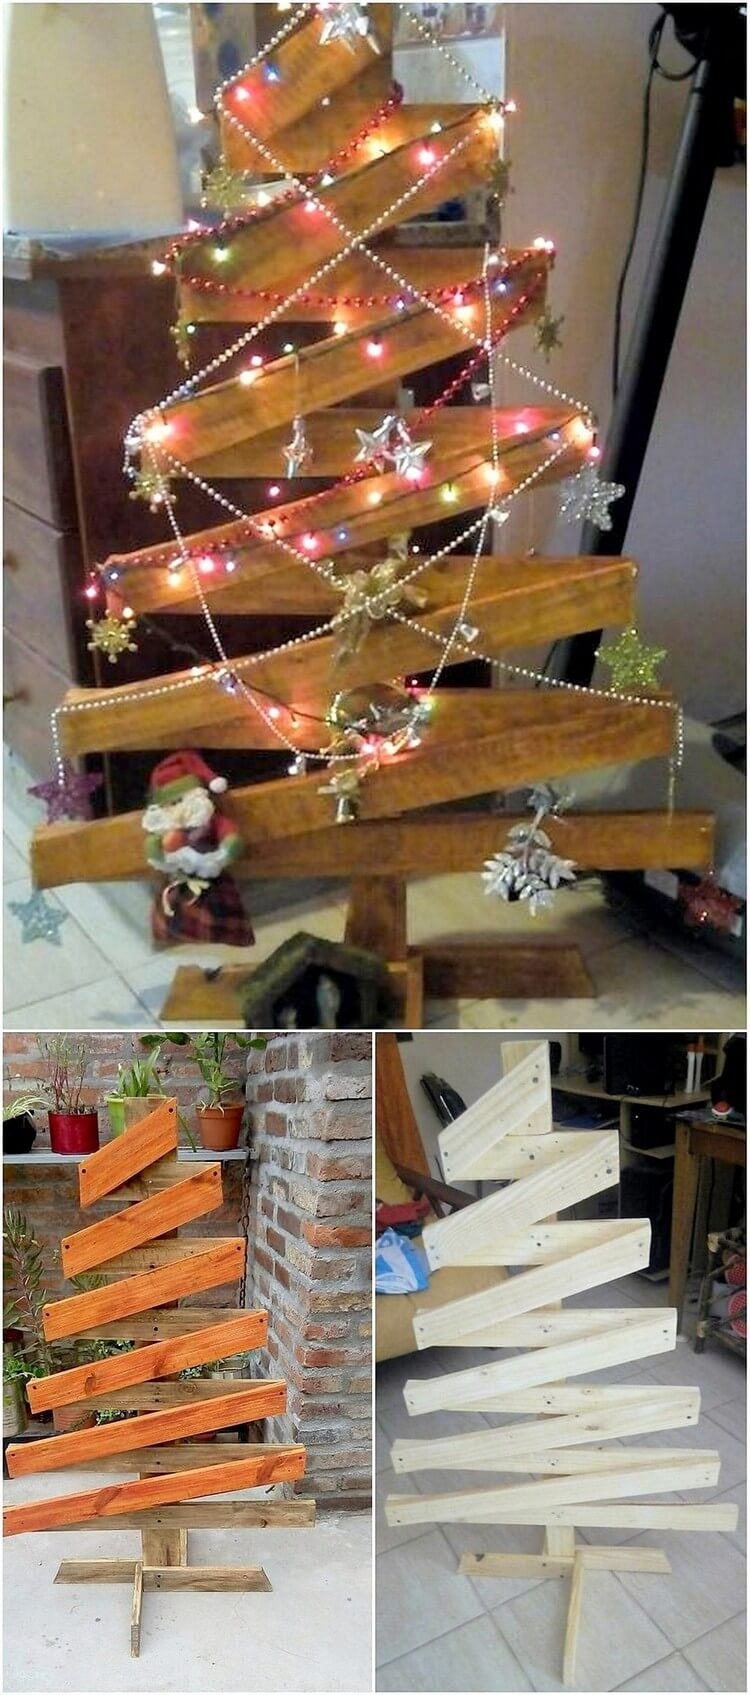 Genius Ways to Reuse Wasted Wood Pallets | Recycled Crafts